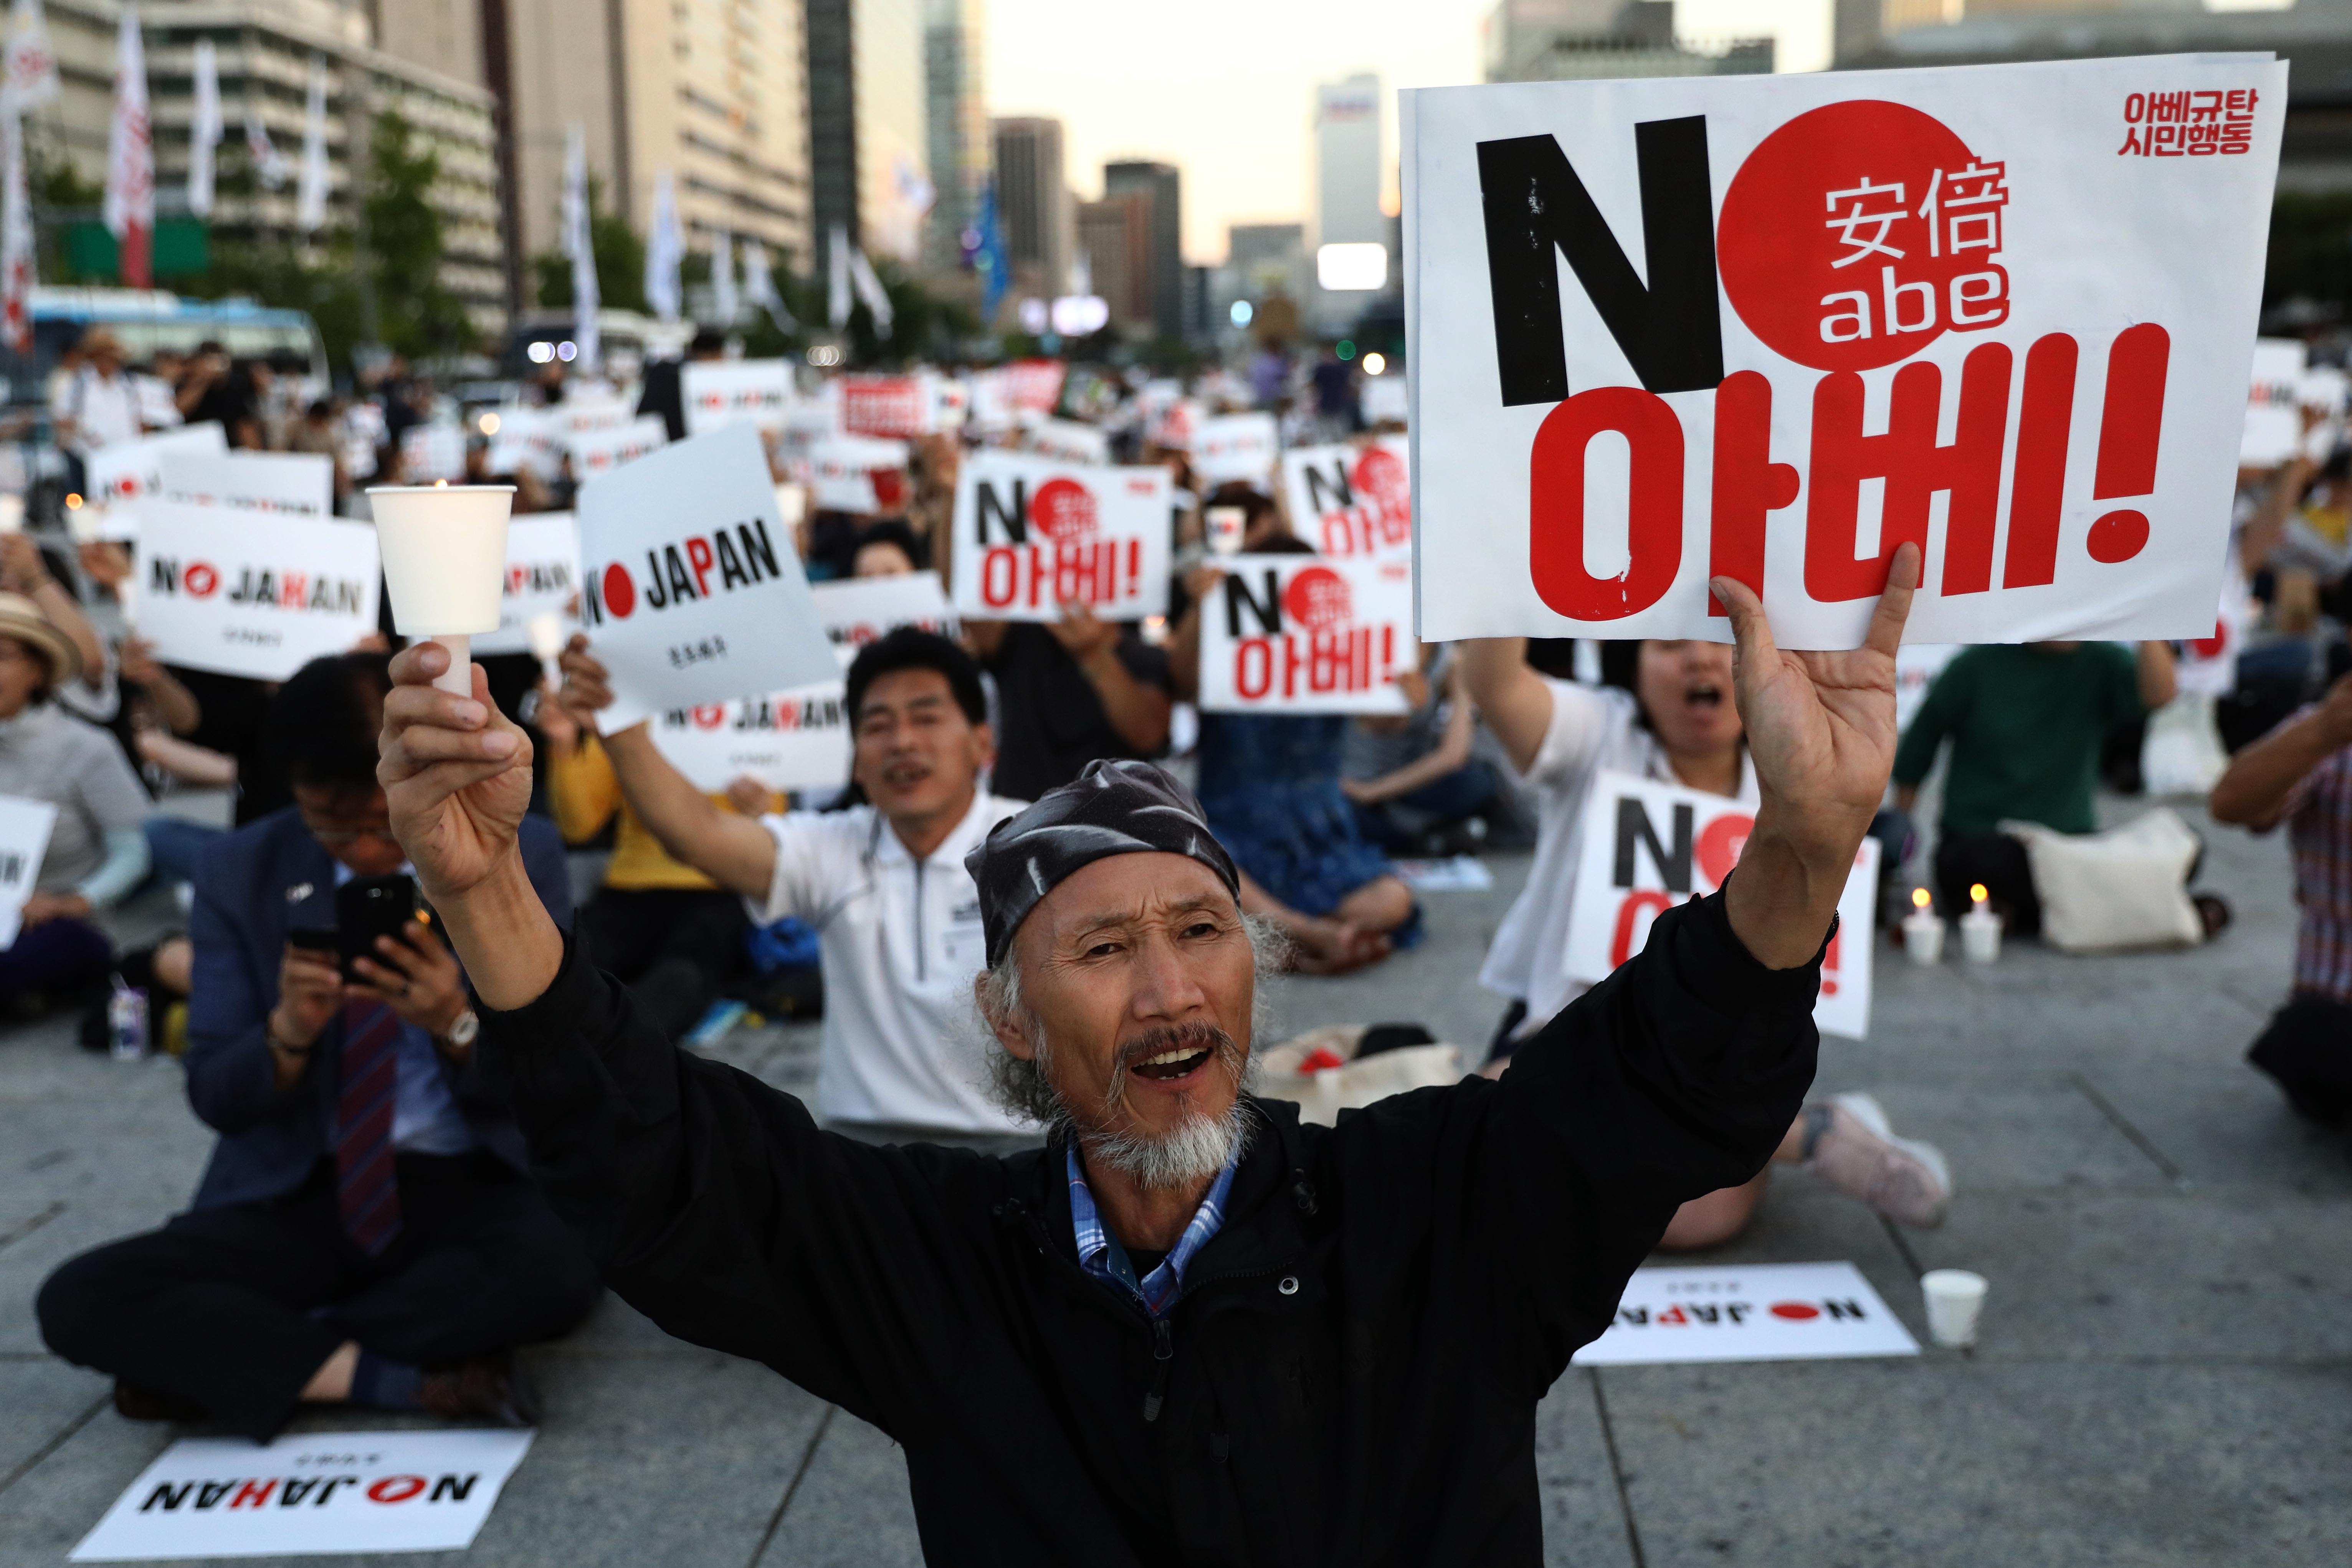 South Koreans participate in a rally to denounce Japan's new trade restrictions and Japanese Prime Minister Shinzo Abe on August 24, 2019 in Seoul, South Korea. The bilateral relationship between Japan and South Korea has worsened recently, with the Japanese government's decision to remove South Korea from so-called 'white list' of trade restriction. Some Korean protesters, students and conservative shop owners have started boycotting Japanese products.